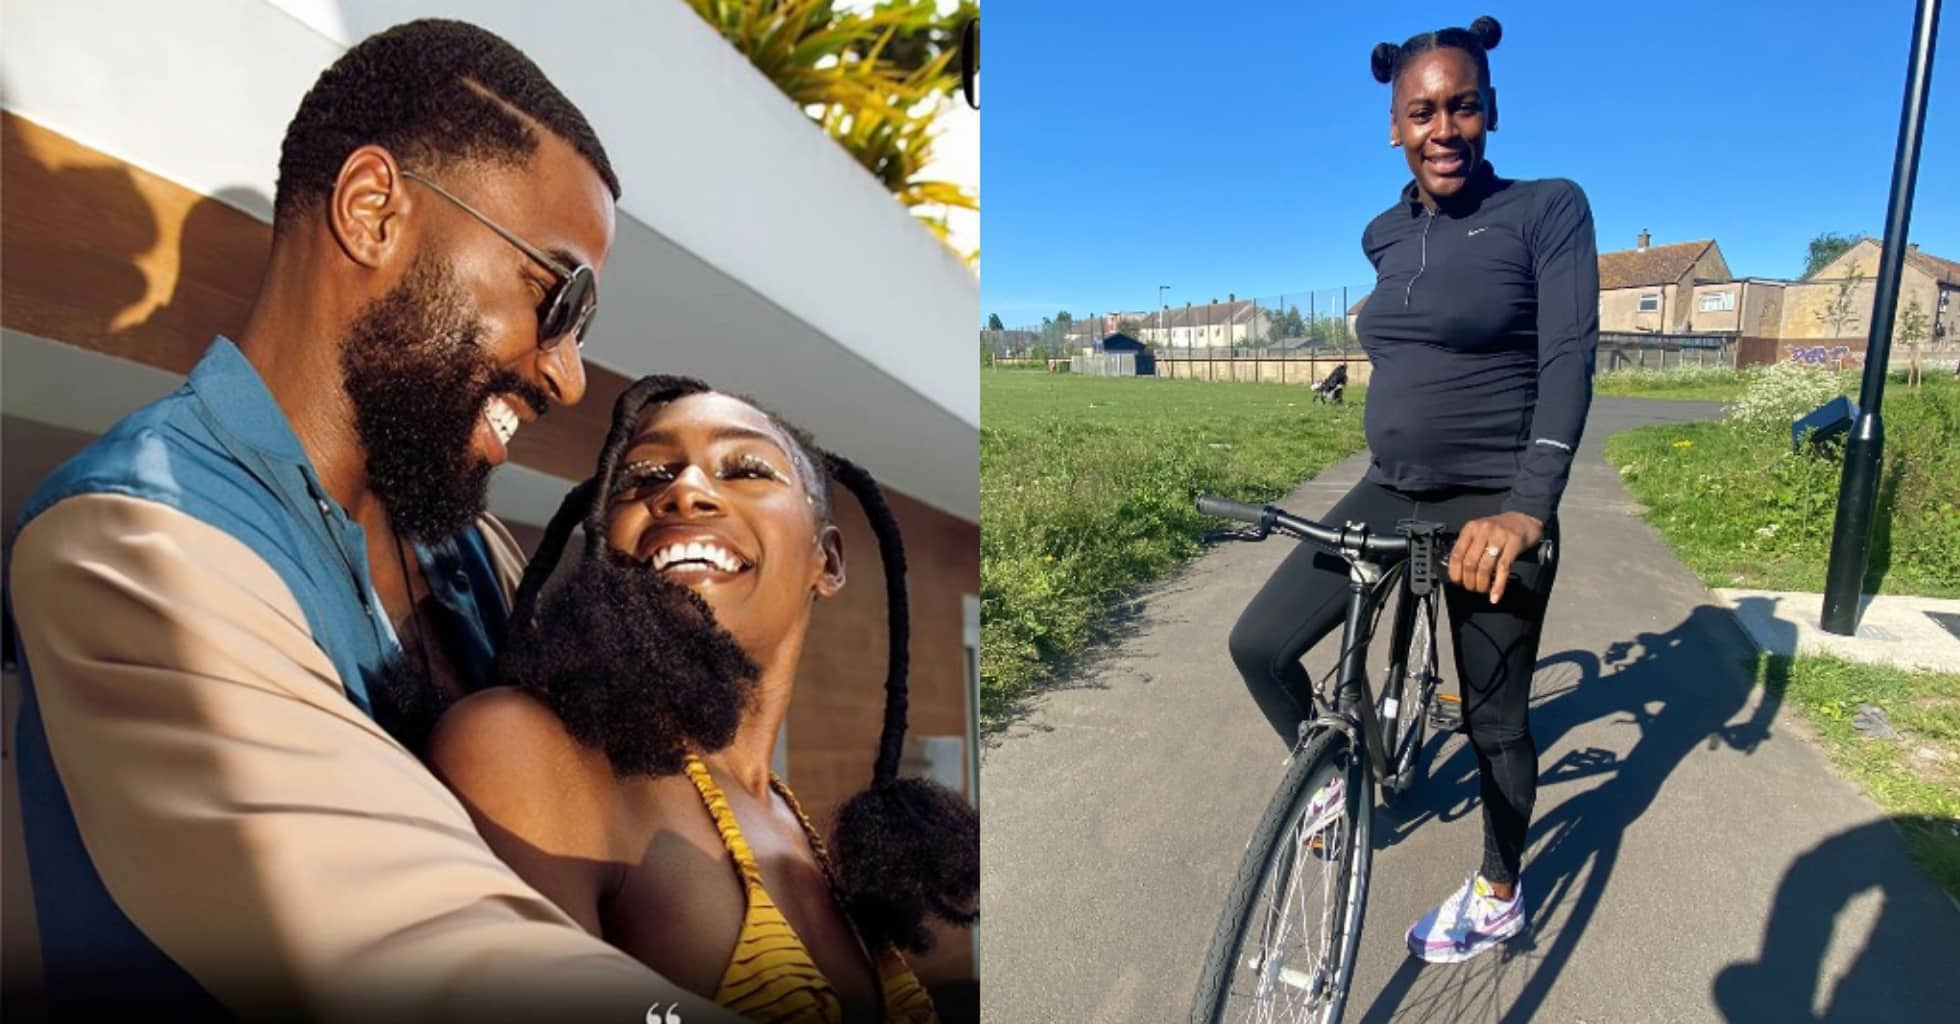 Perri, wife of BBNaija's Mike Edwards, hits the streets riding with baby bump